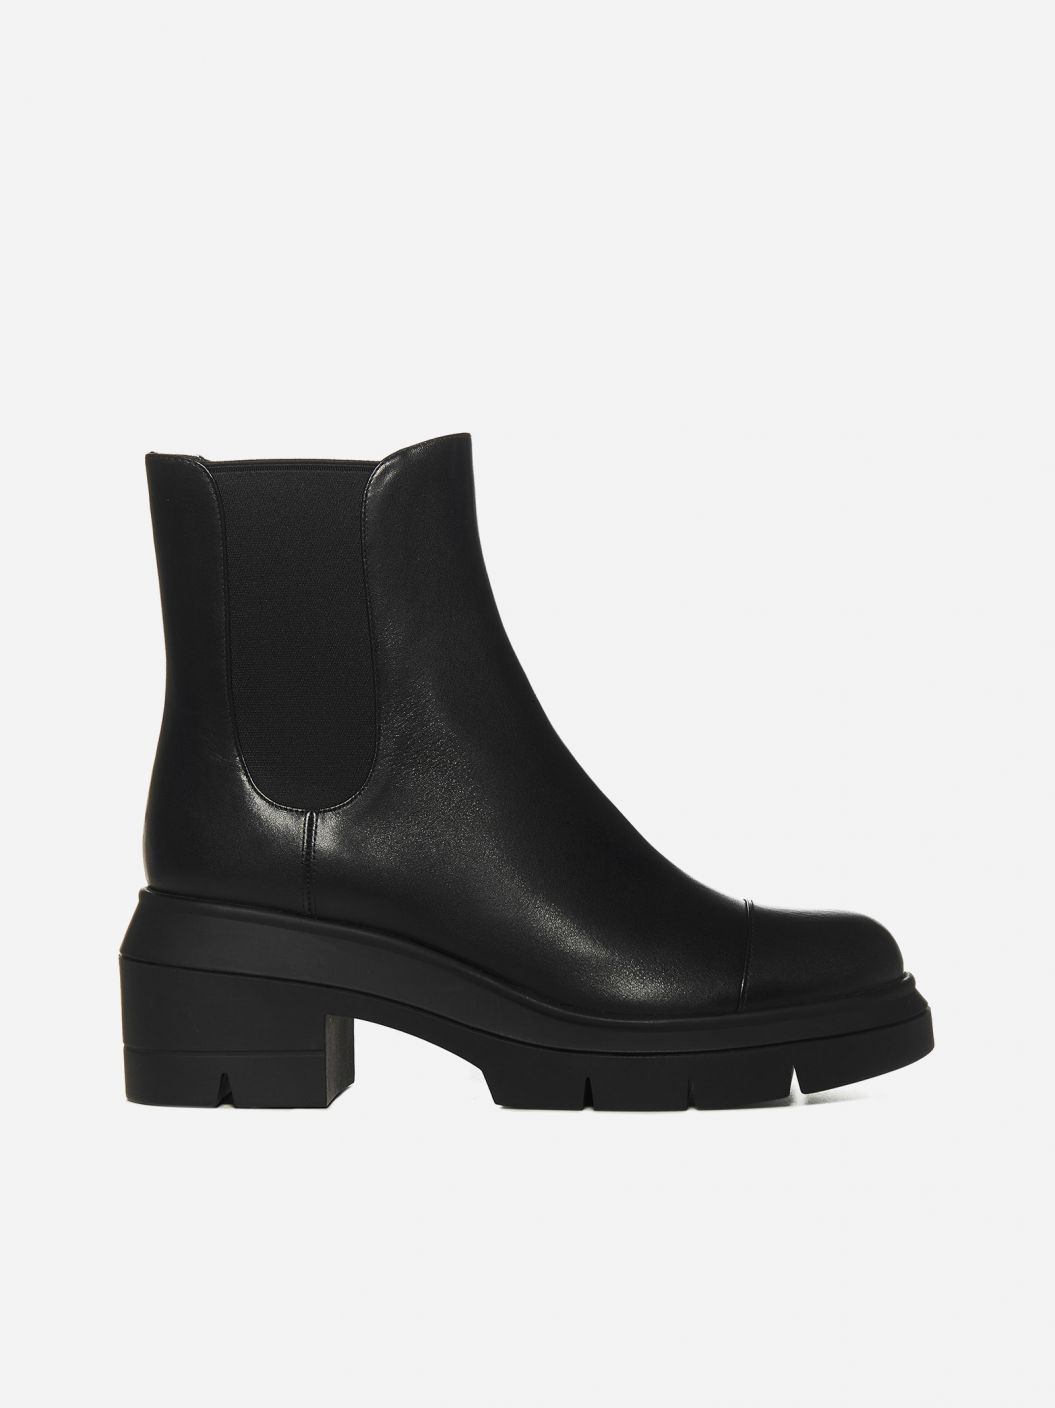 Norah leather Chelsea boots